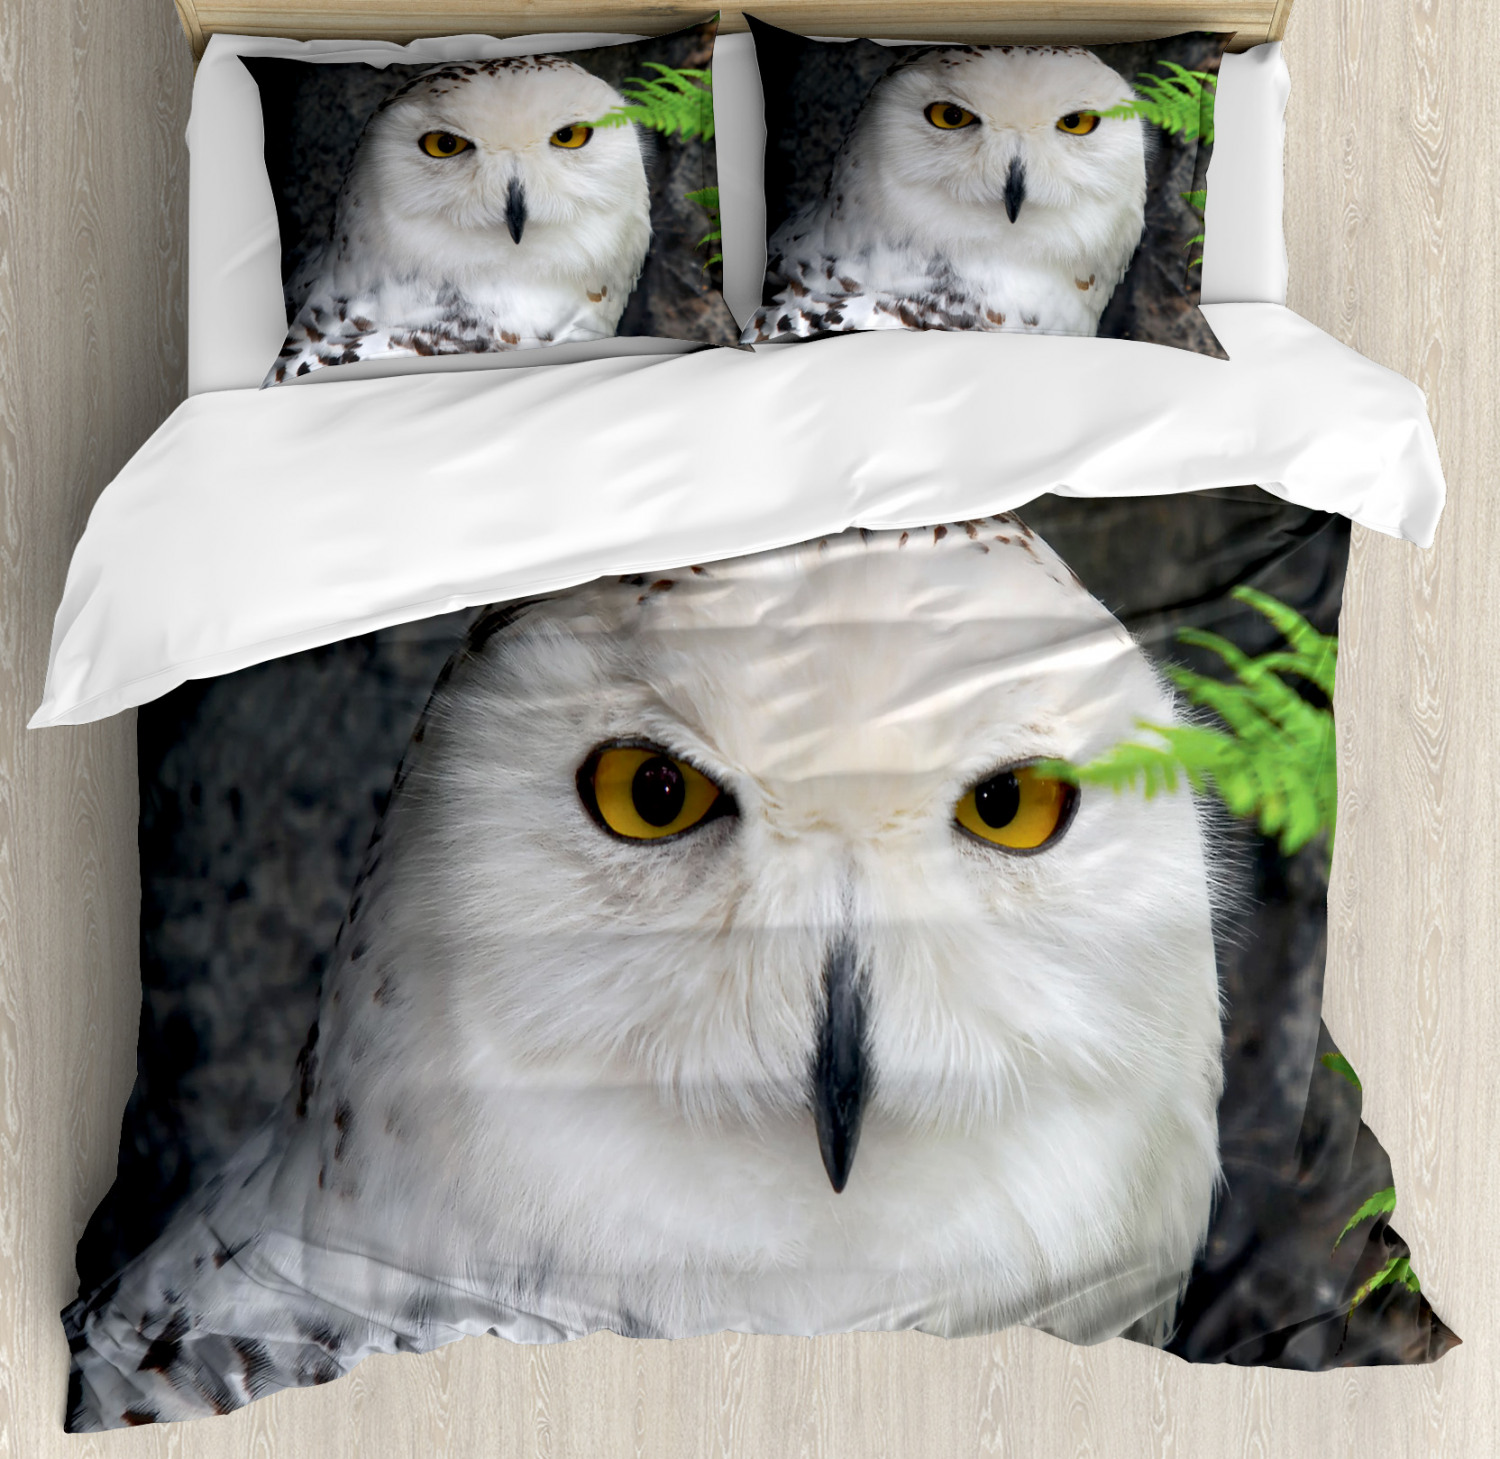 Wizard Duvet Cover Set with Pillow Shams Magician Pet White Owl Print